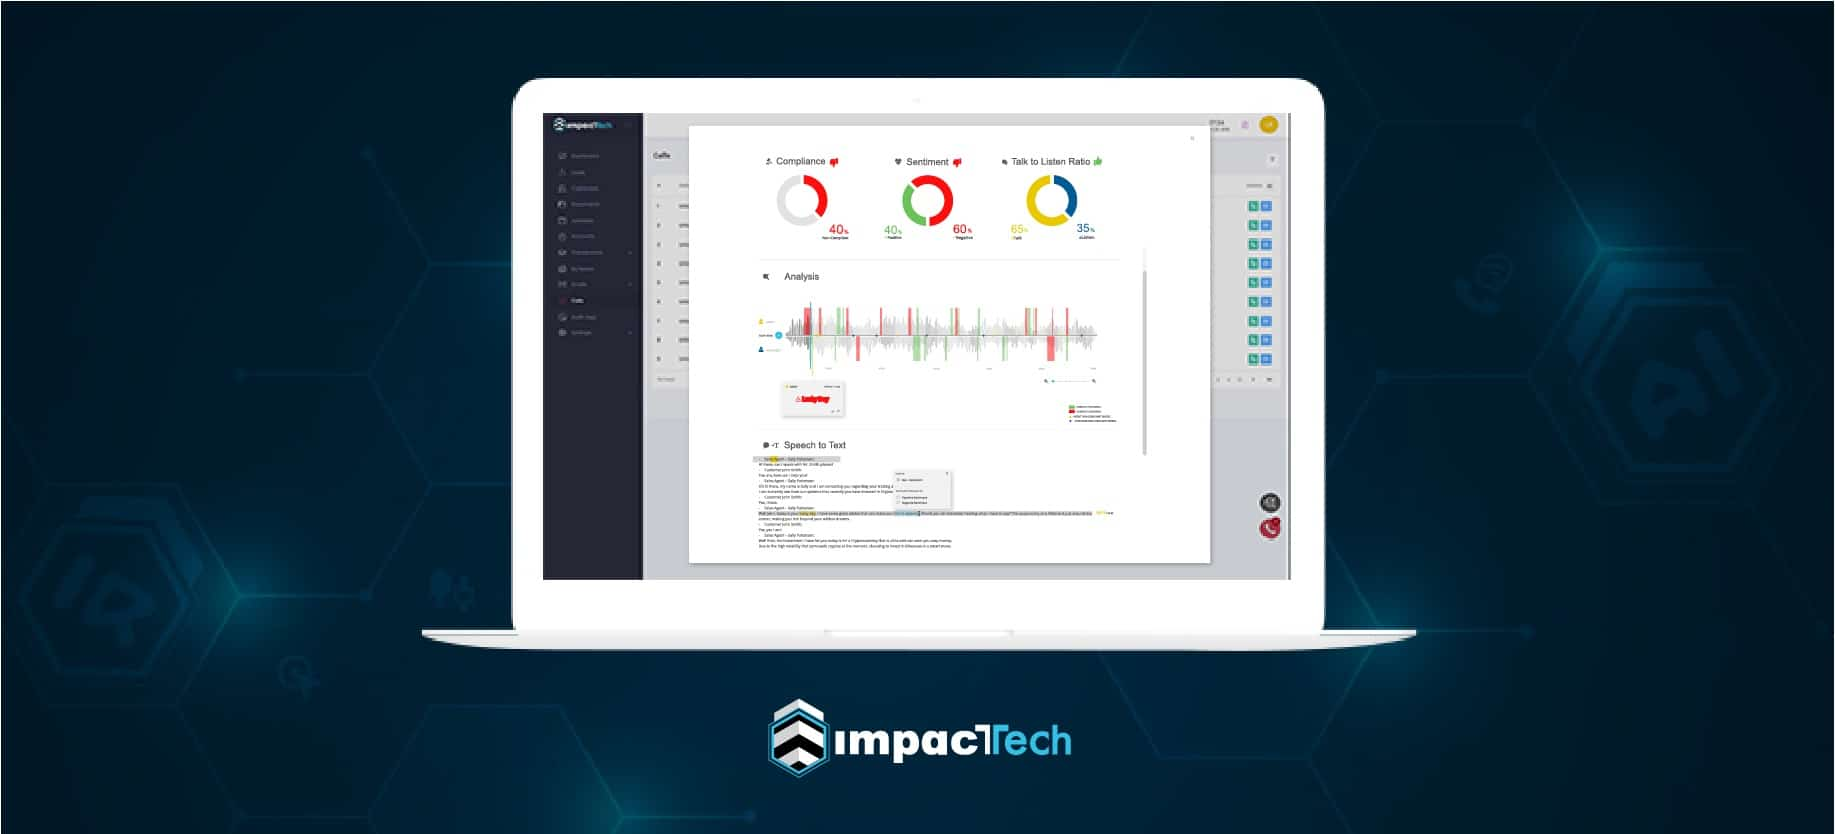 Achieve Exceptional Customer Satisfaction with Impact Tech